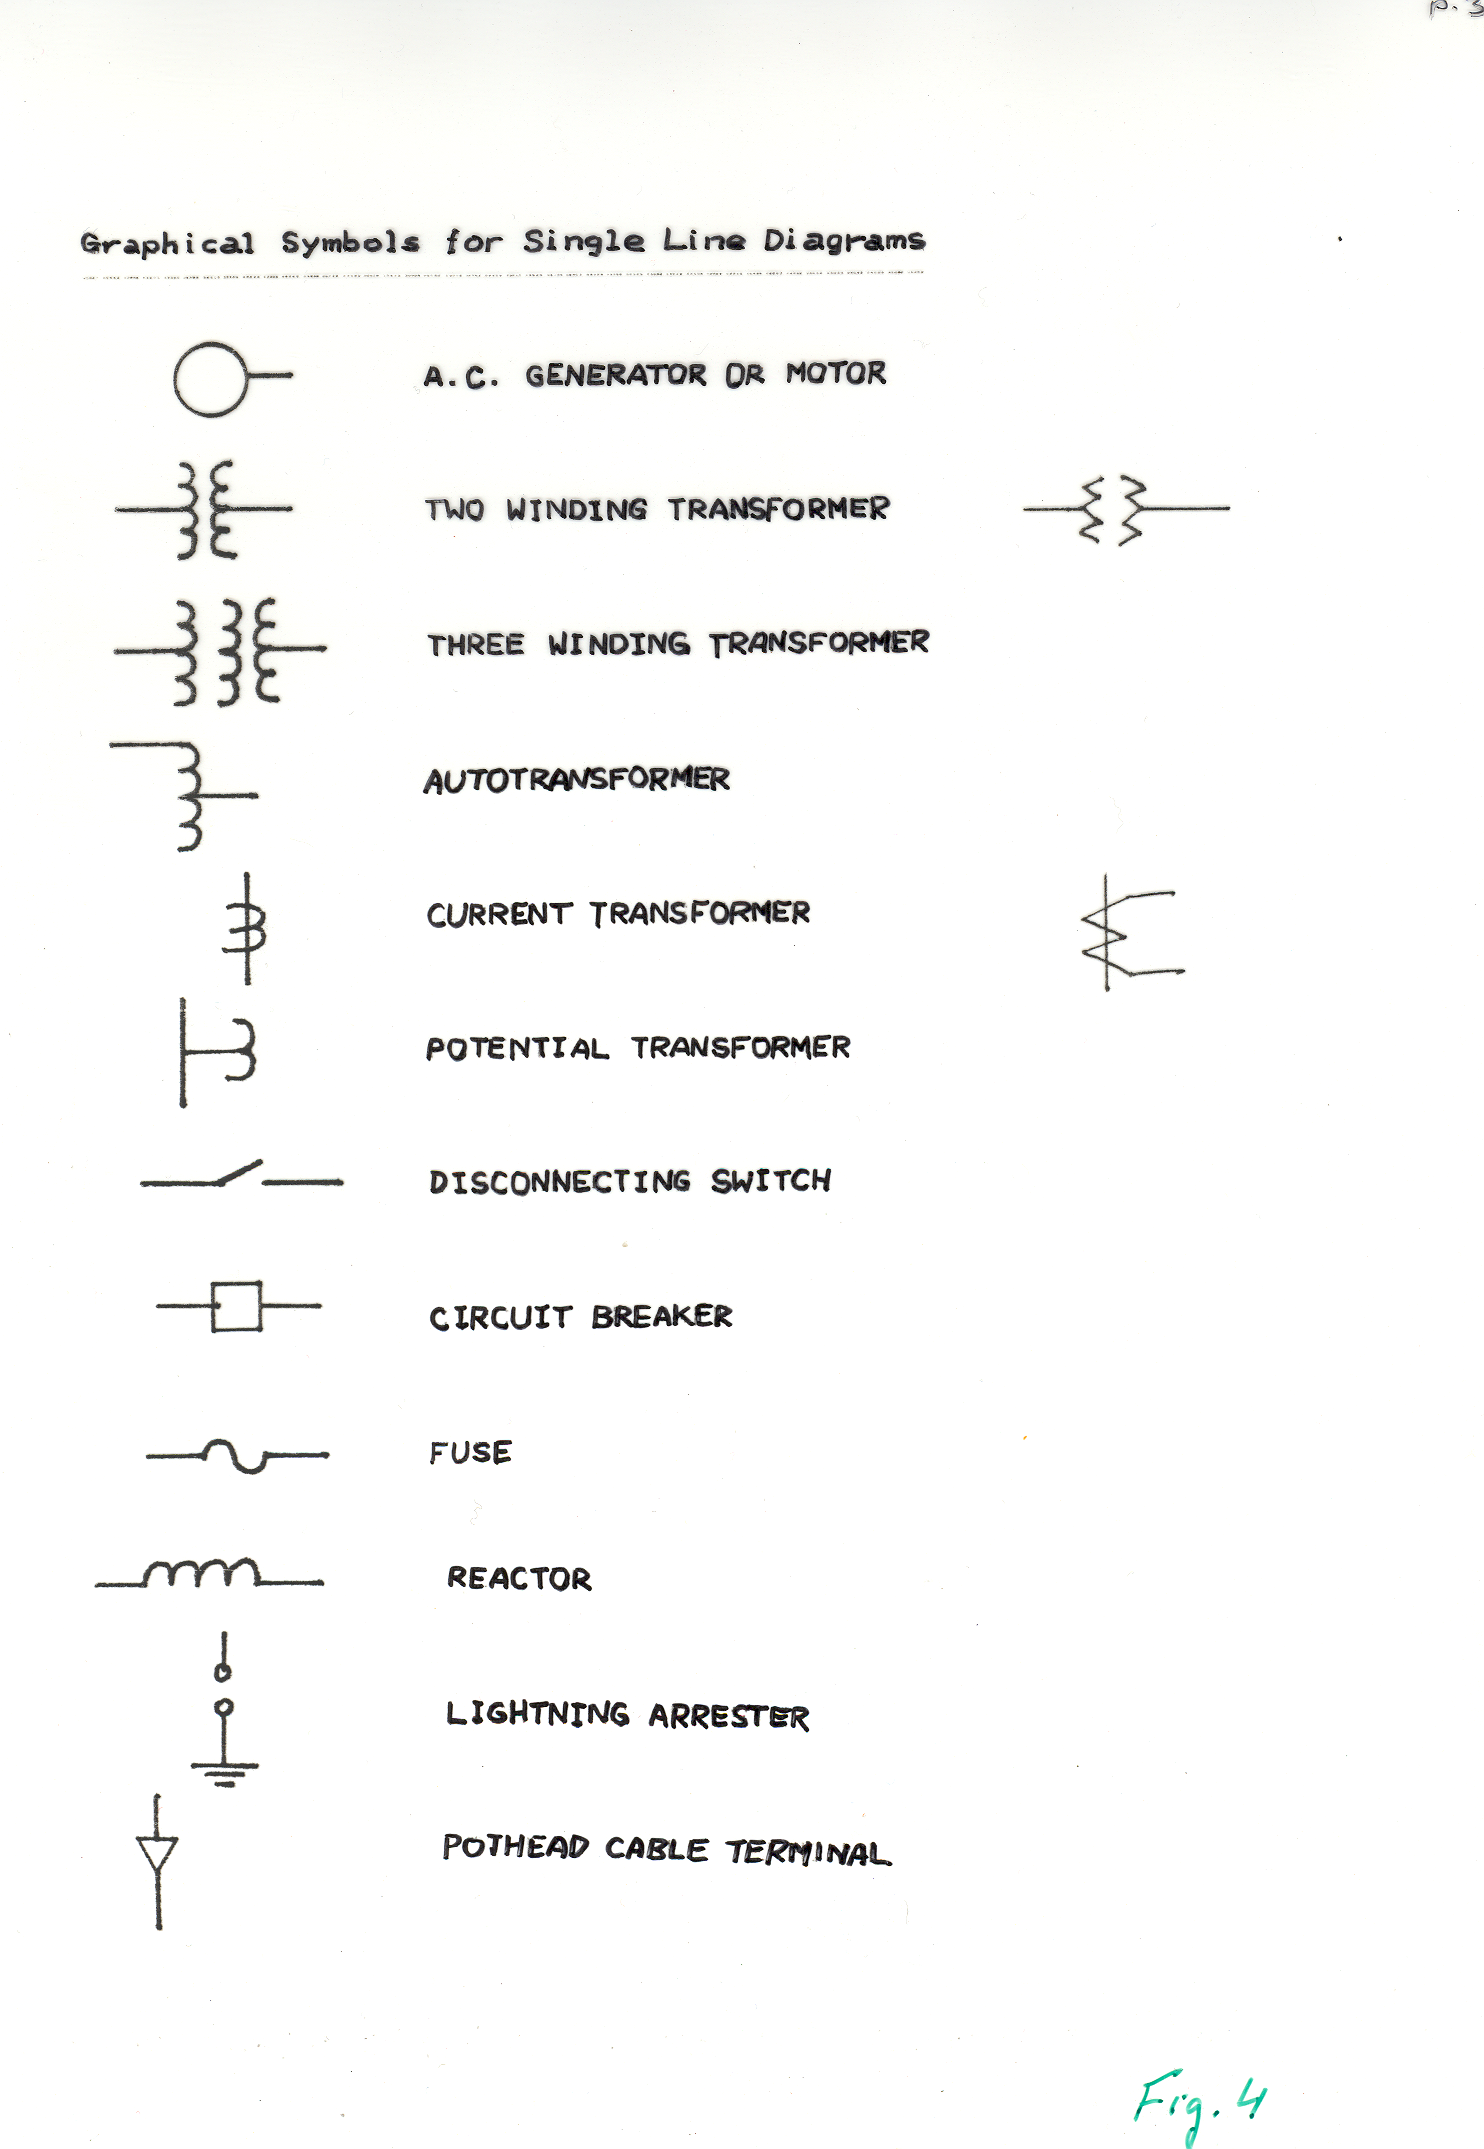 Substation One Line Diagram Symbols - Wiring Library •